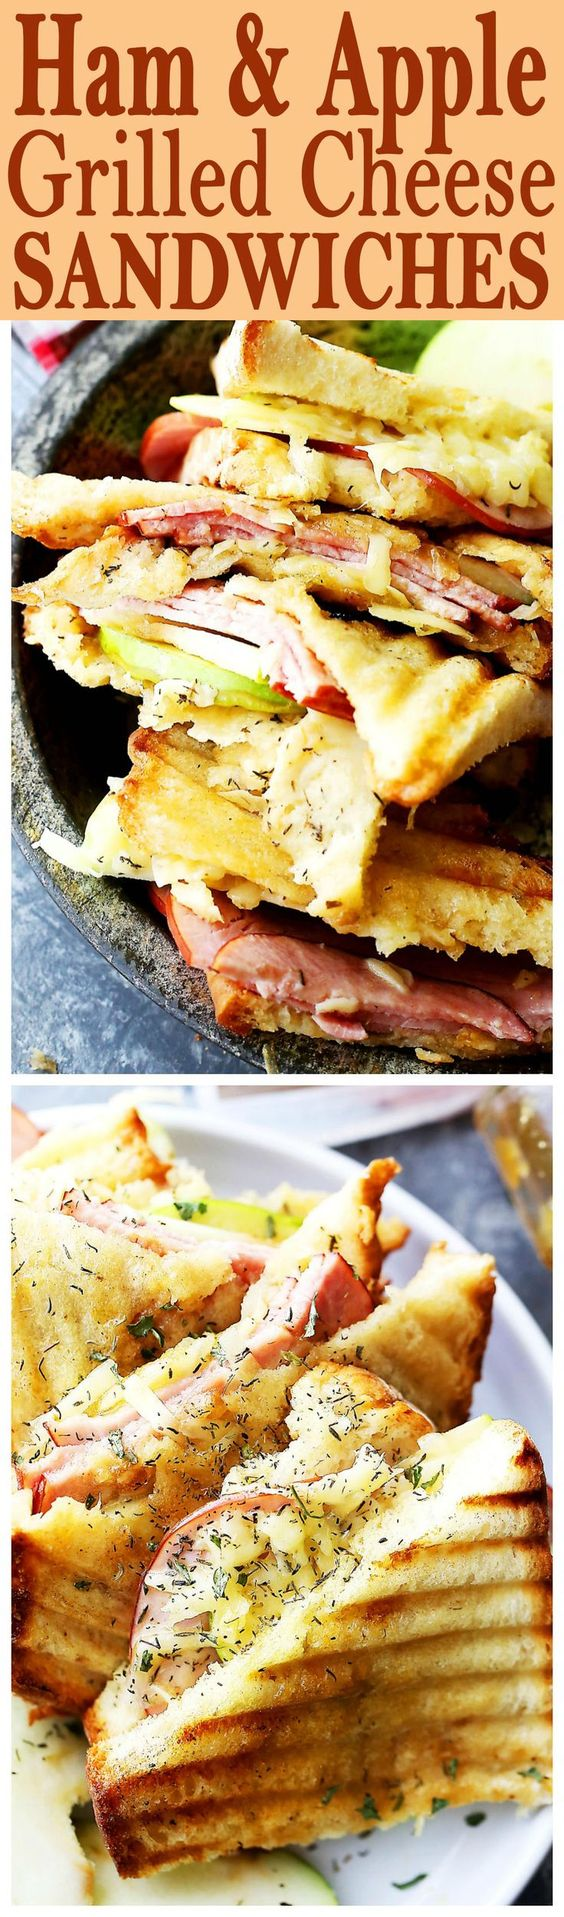 Ham and Apple Grilled Cheese Sandwich - Transform the classic grilled ...